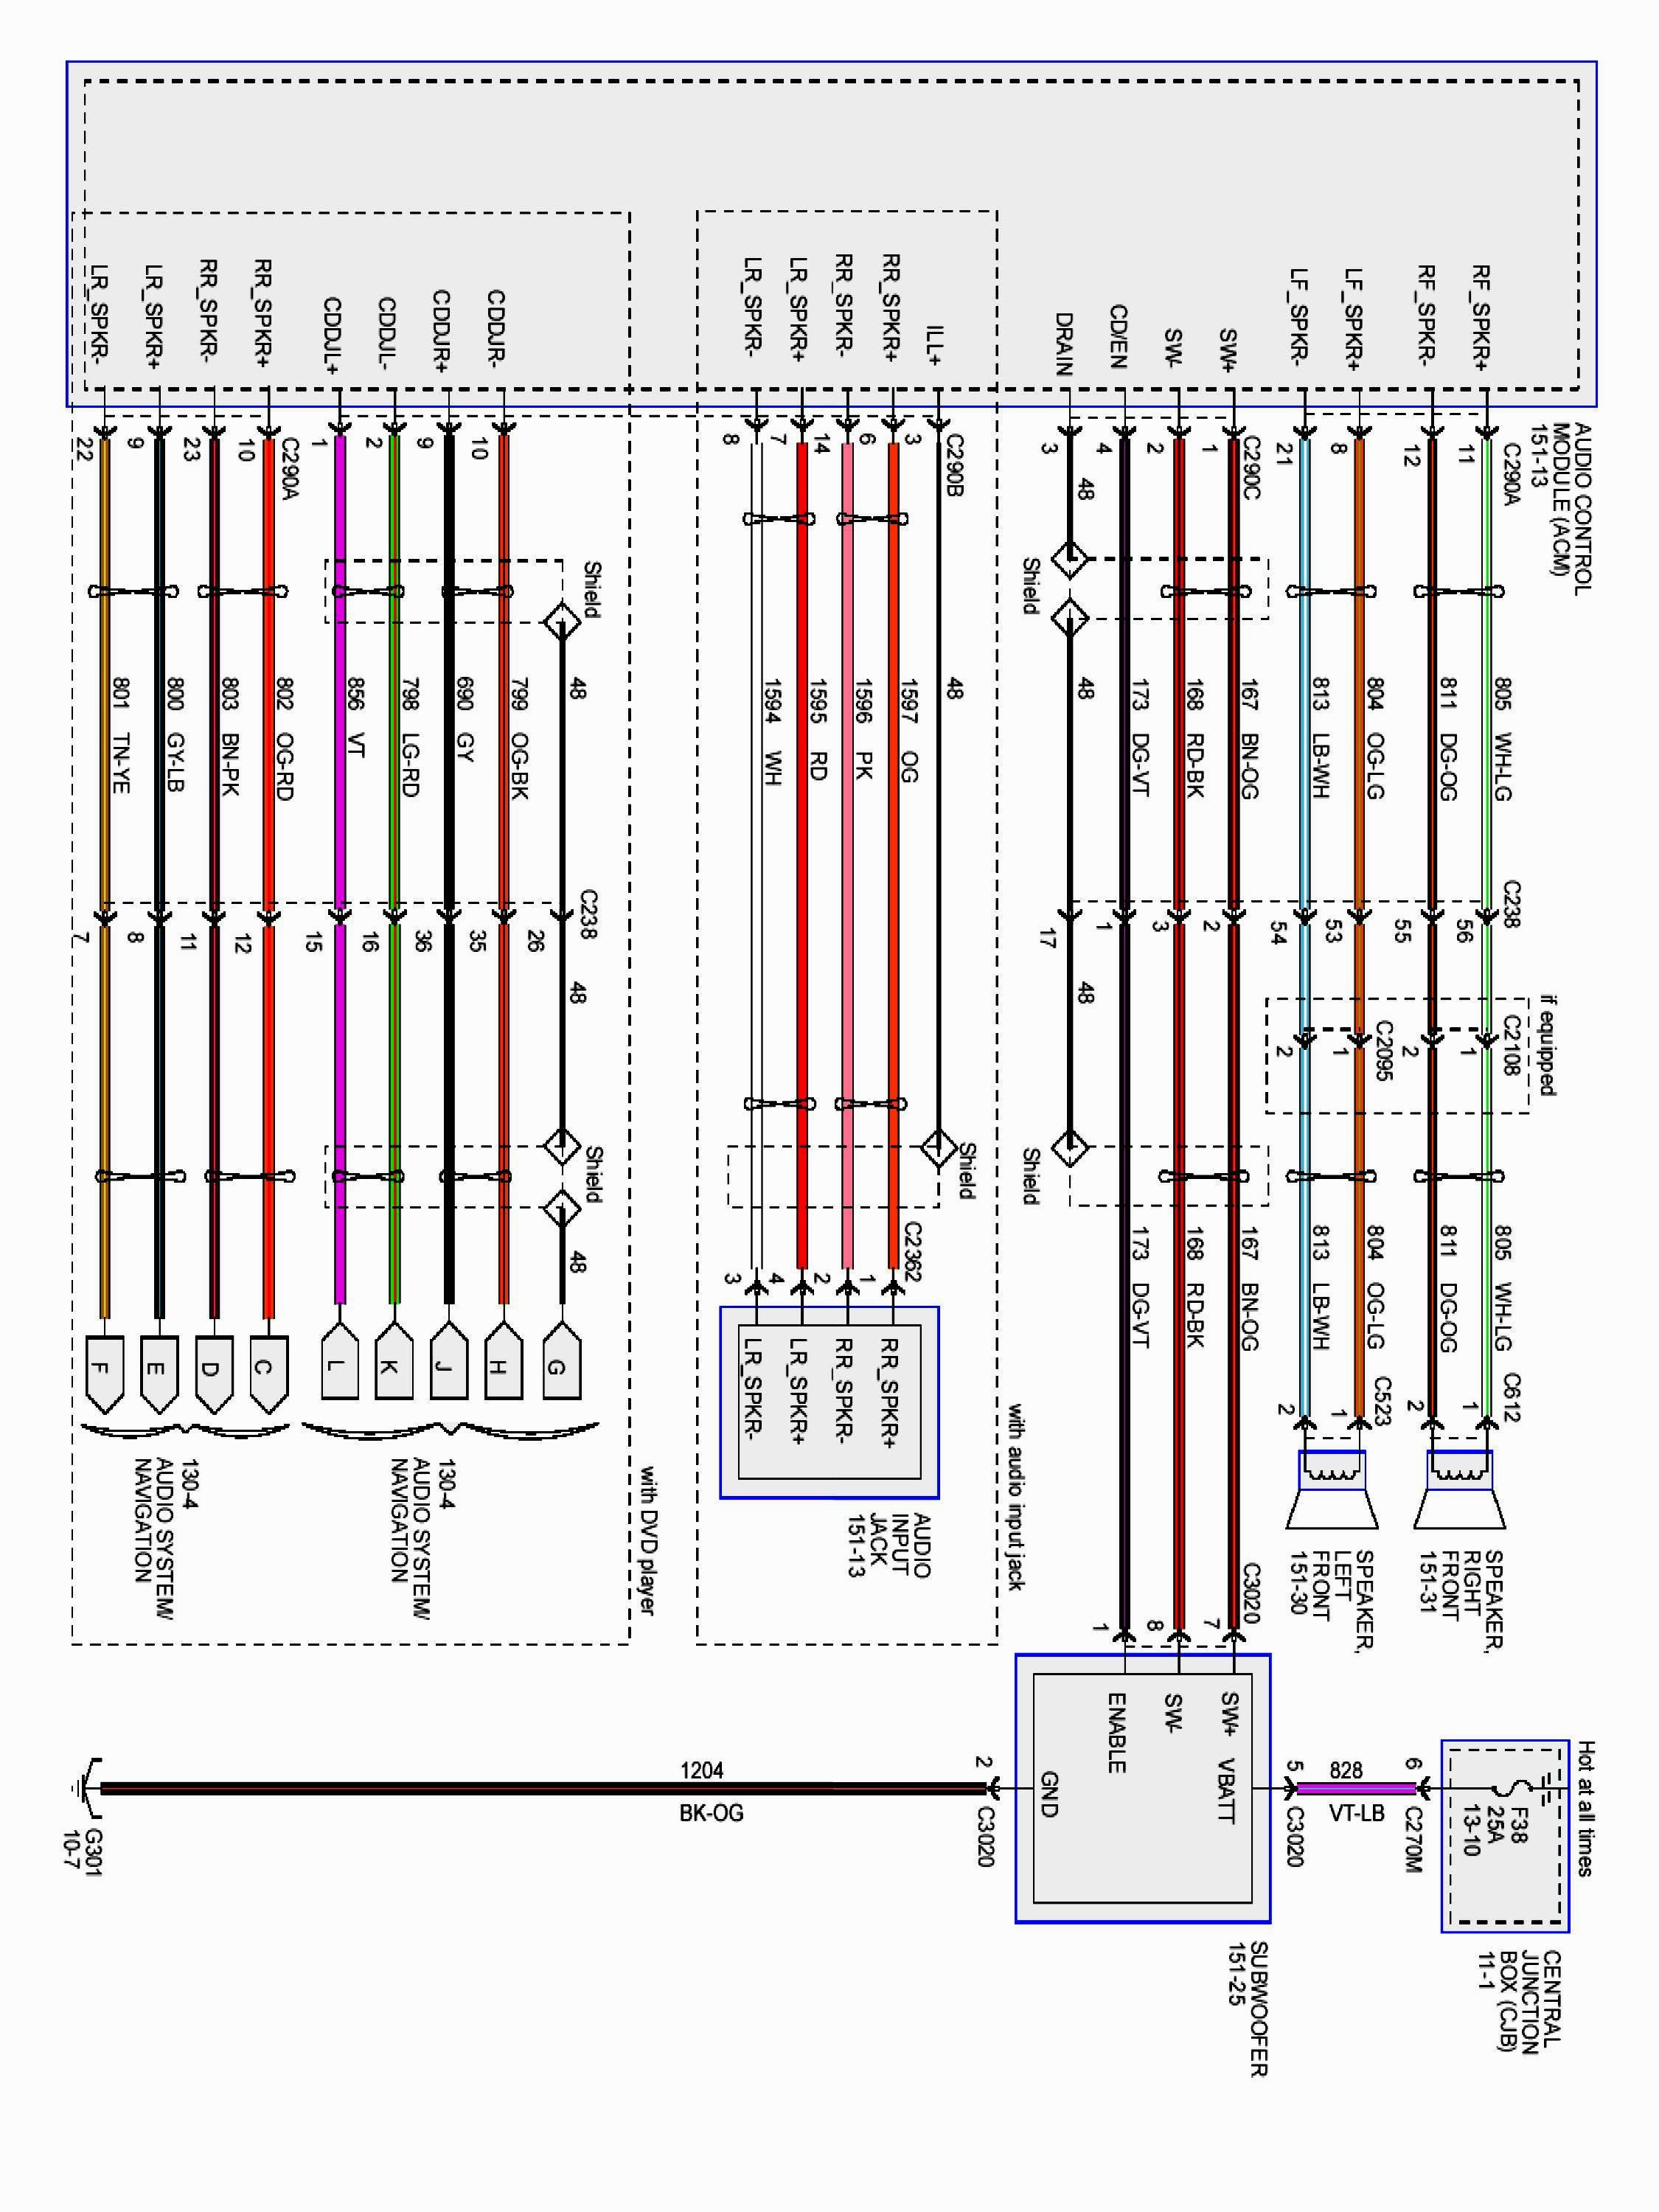 1993 ford Explorer Wiring Diagram 94 ford Pickup Wiring Diagram Another Blog About Wiring Diagram • Of 1993 ford Explorer Wiring Diagram